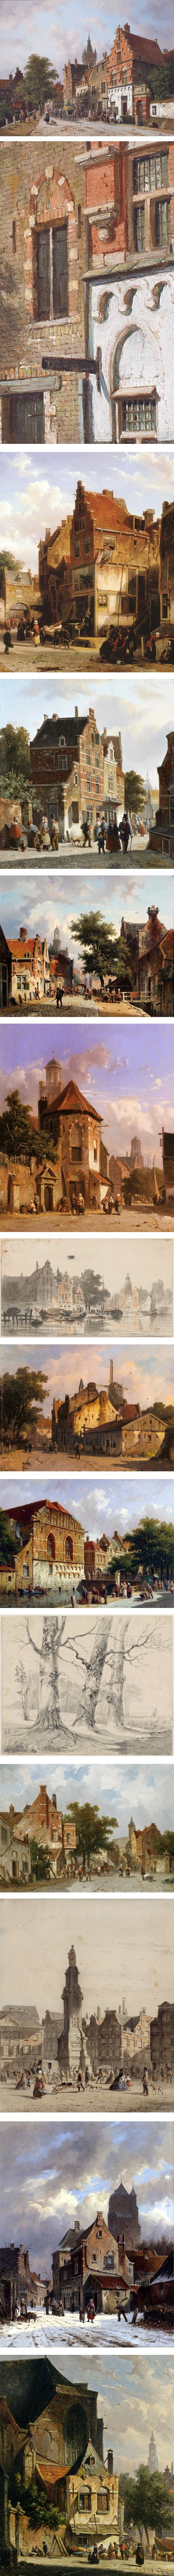 Dutch 19th century cityscape paintings